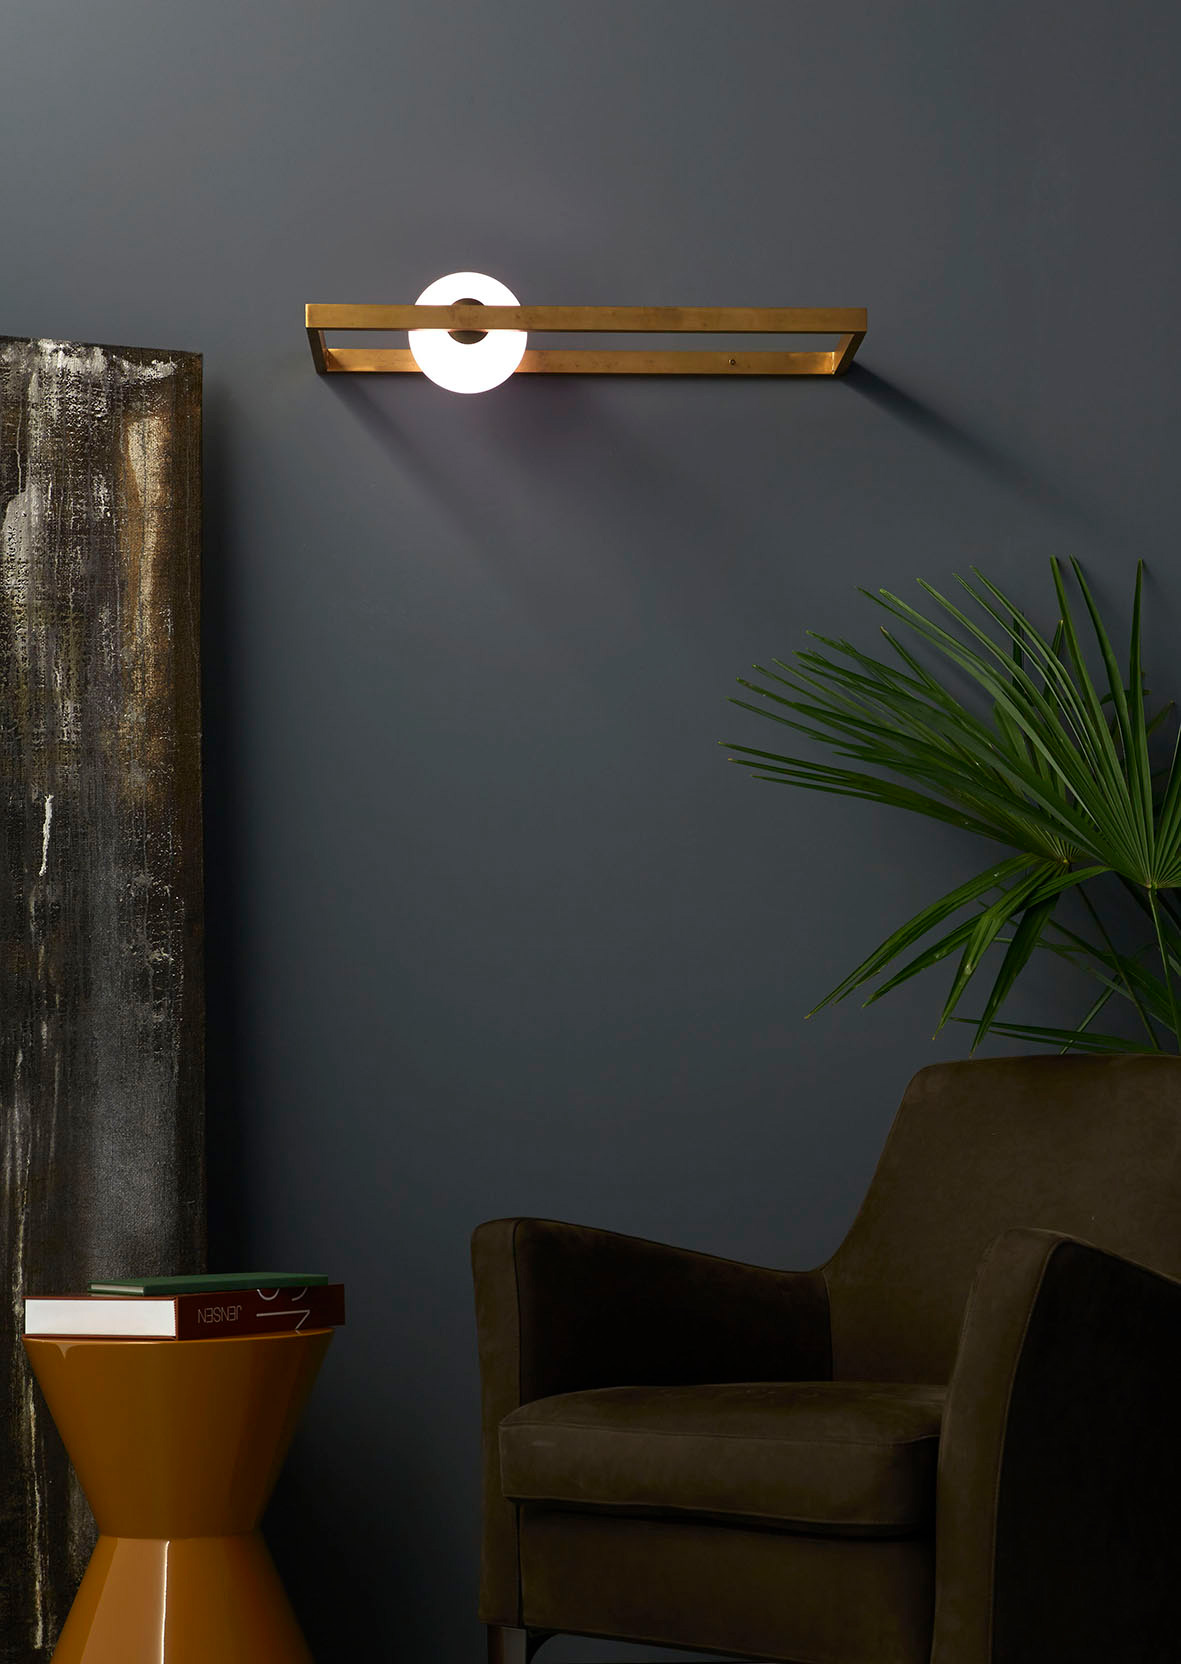 Luxury High-End Italian Designer Mondrian Wall Lamp - Designer & Luxury Lighting at Cassoni